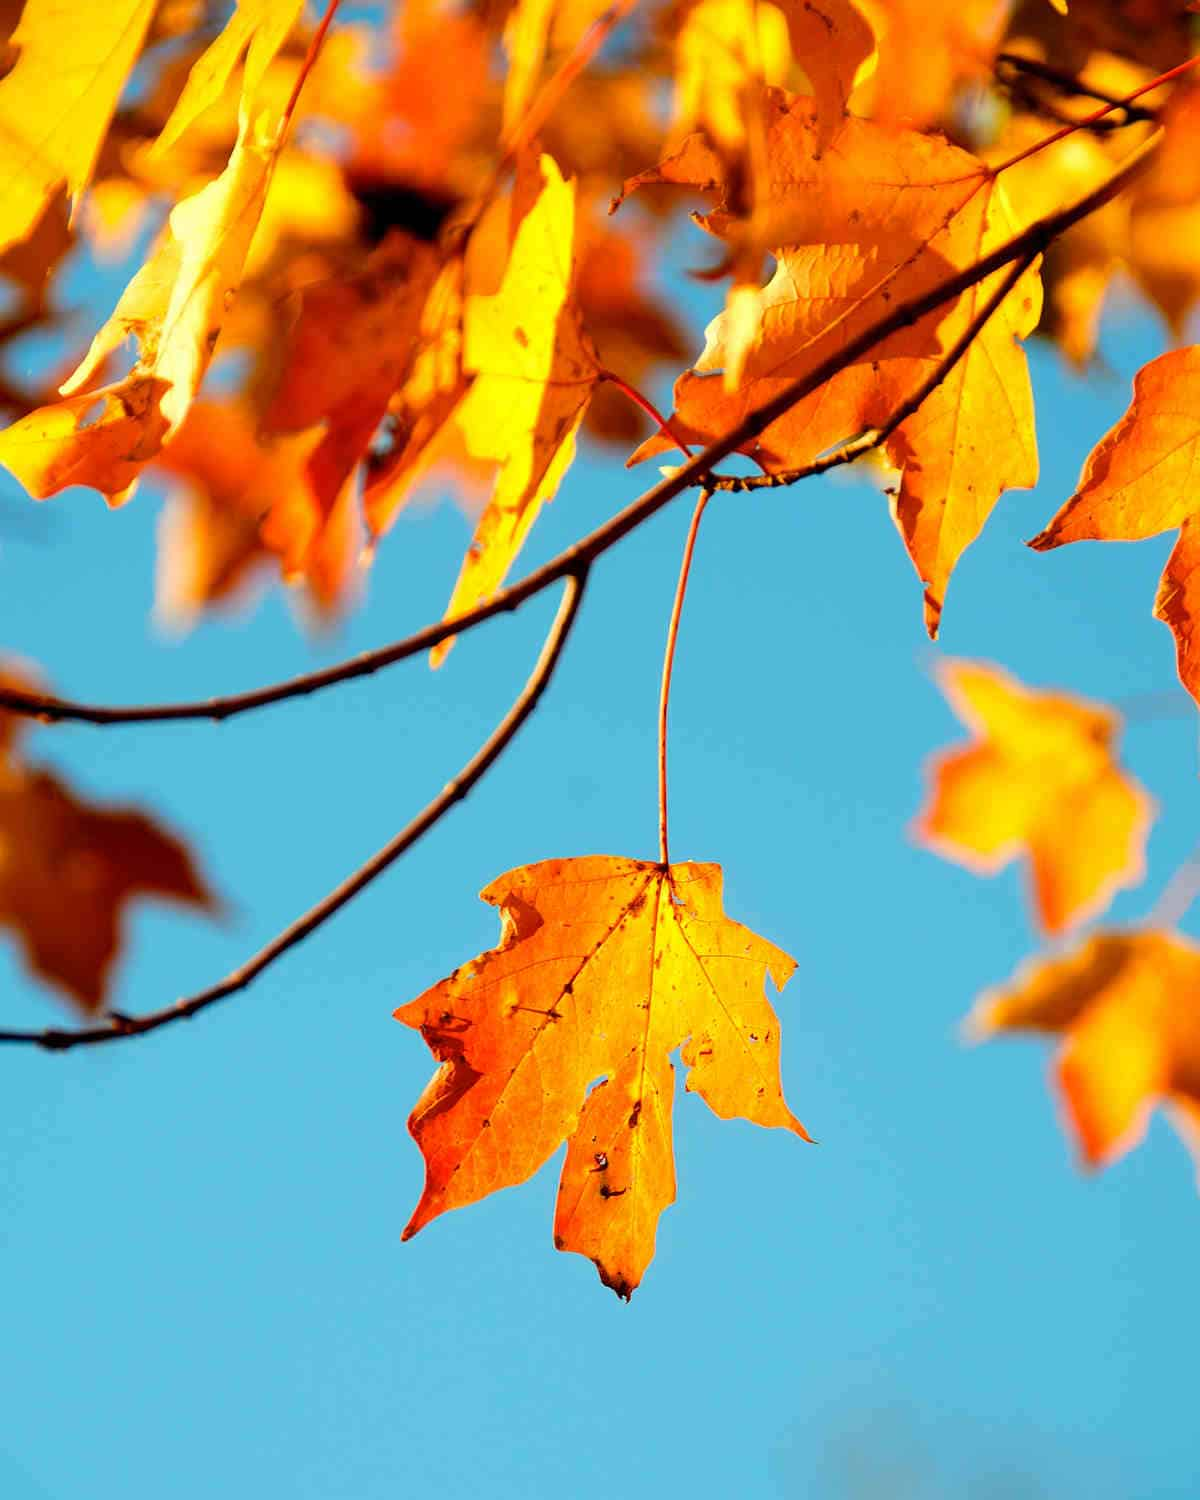 Maple leaf | Take Good Photos This Fall Season With These Photography Basics | photography lighting basics